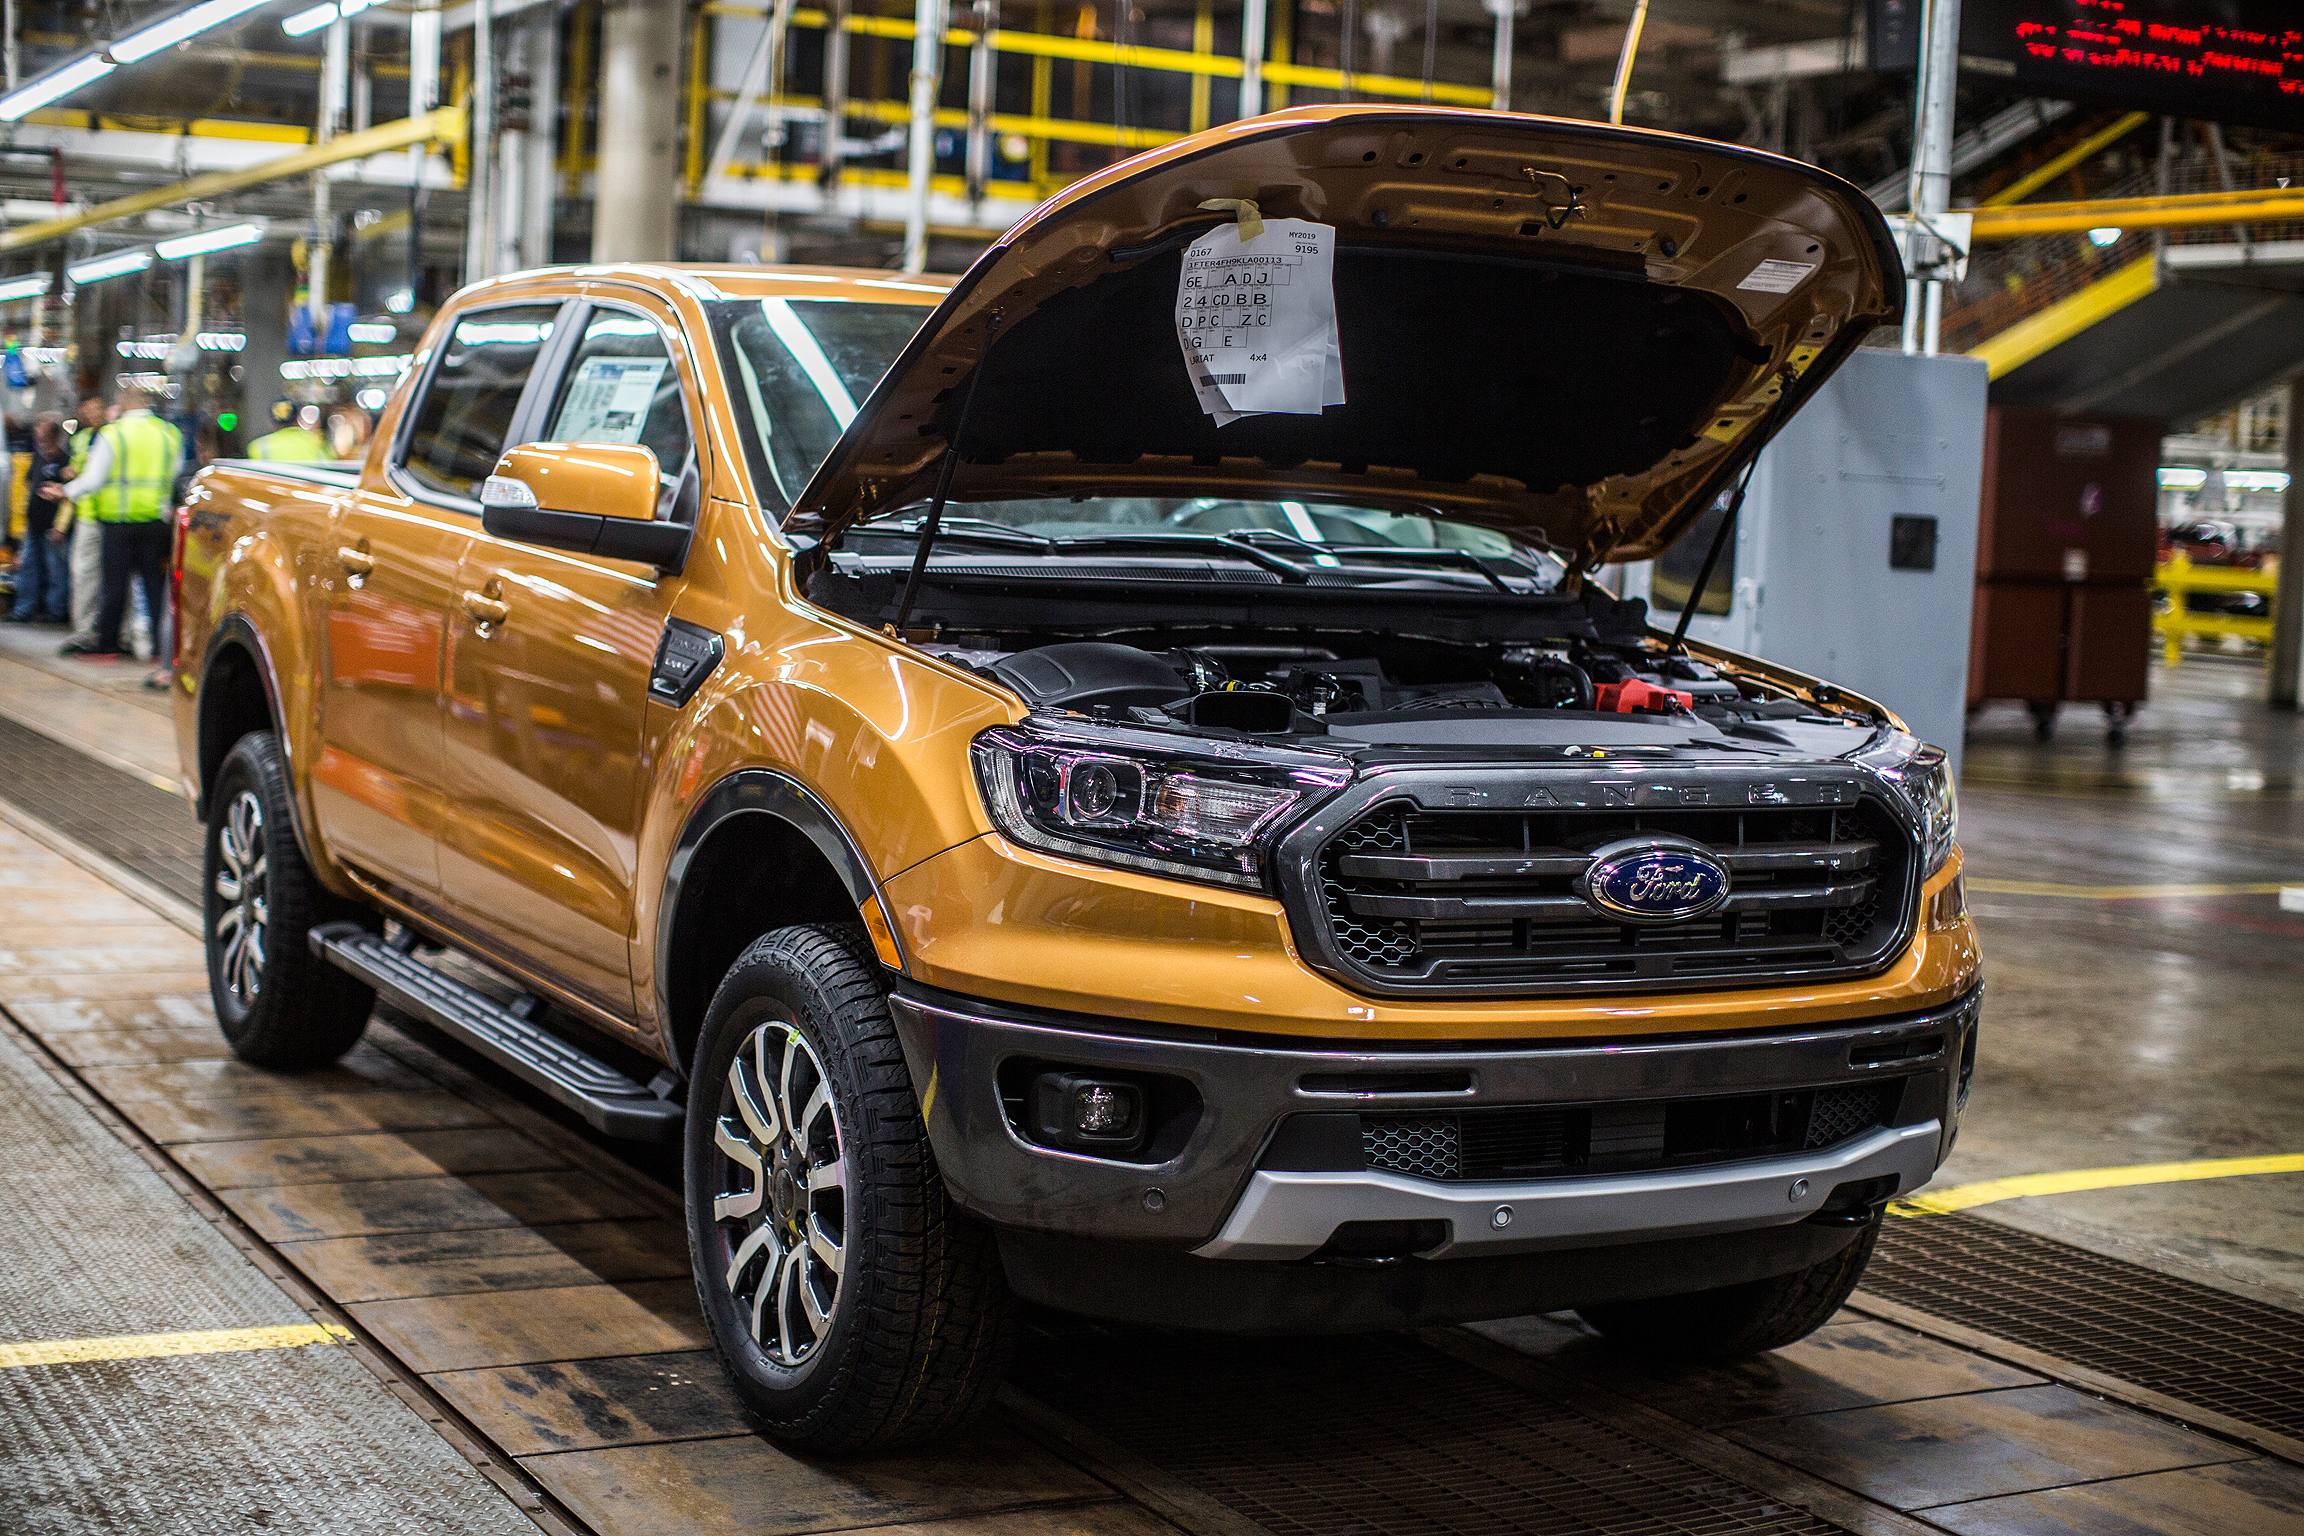 Ford ranger pickup rated at 23 mpg combined best among gasoline powered rivals